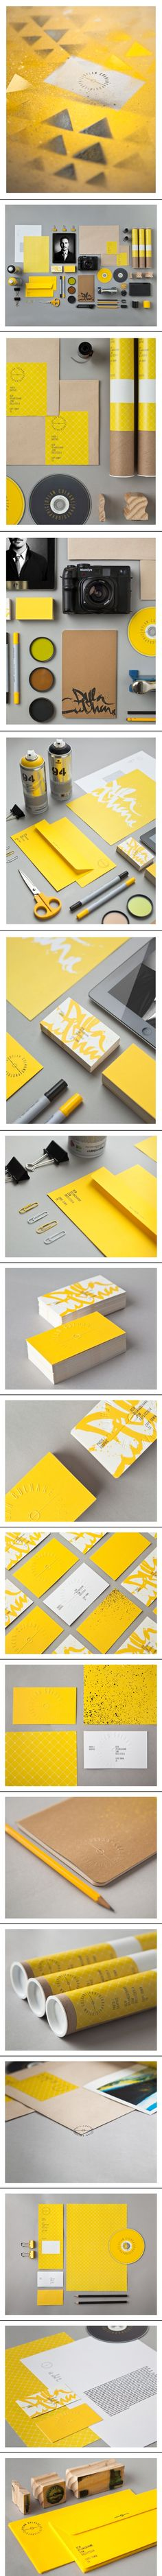 Dylan Culhane long pin but worth it identity packaging branding marketing curated by Packaging Diva PD